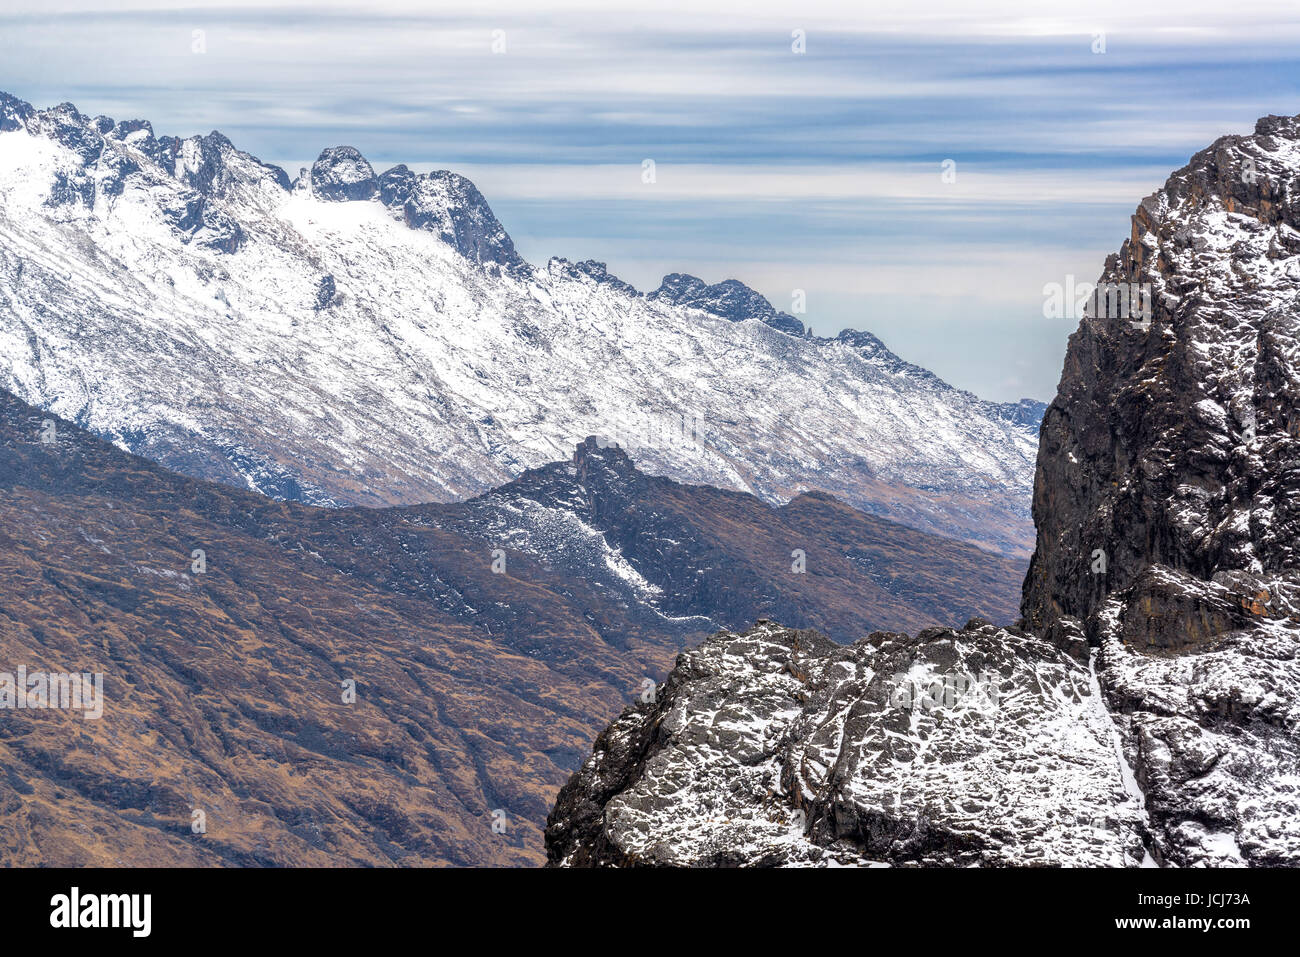 View of the Andes mountains in the Cordillera Real near La Paz, Bolivia - Stock Image